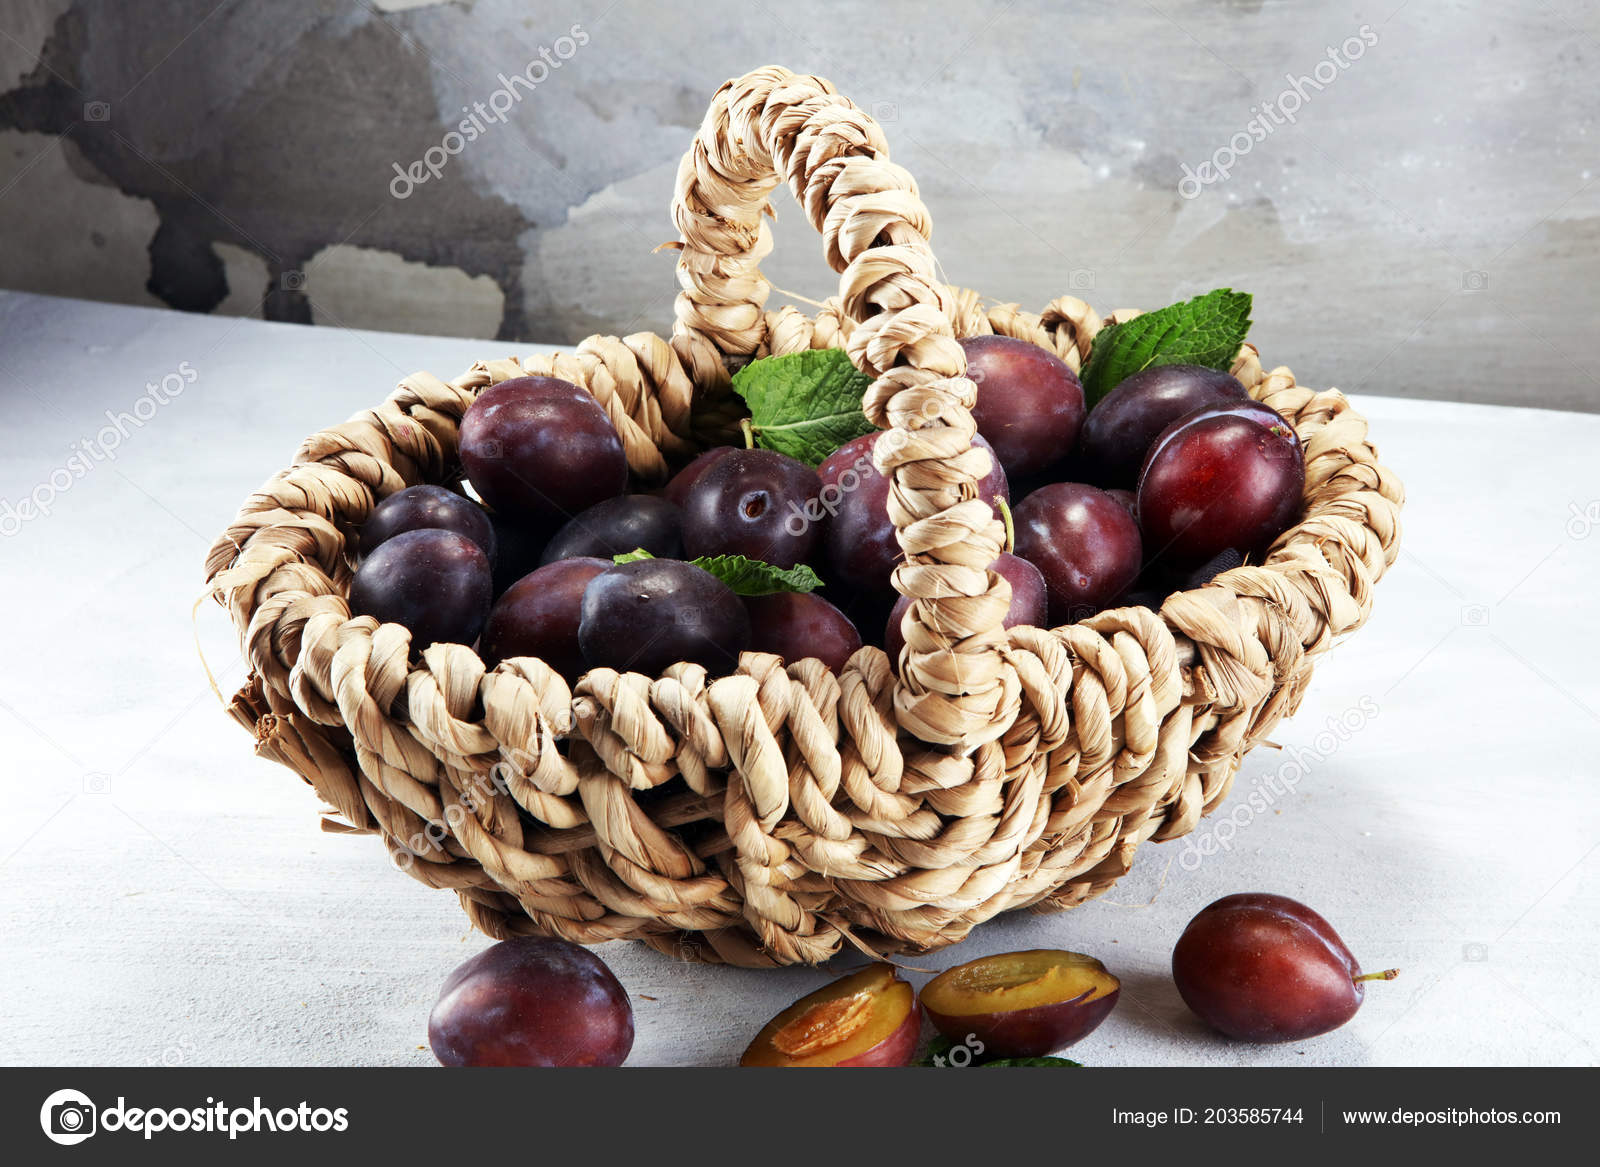 Plums Rustic Stone Background Half Blue Plum Fruit Many Beautiful Stock Photo